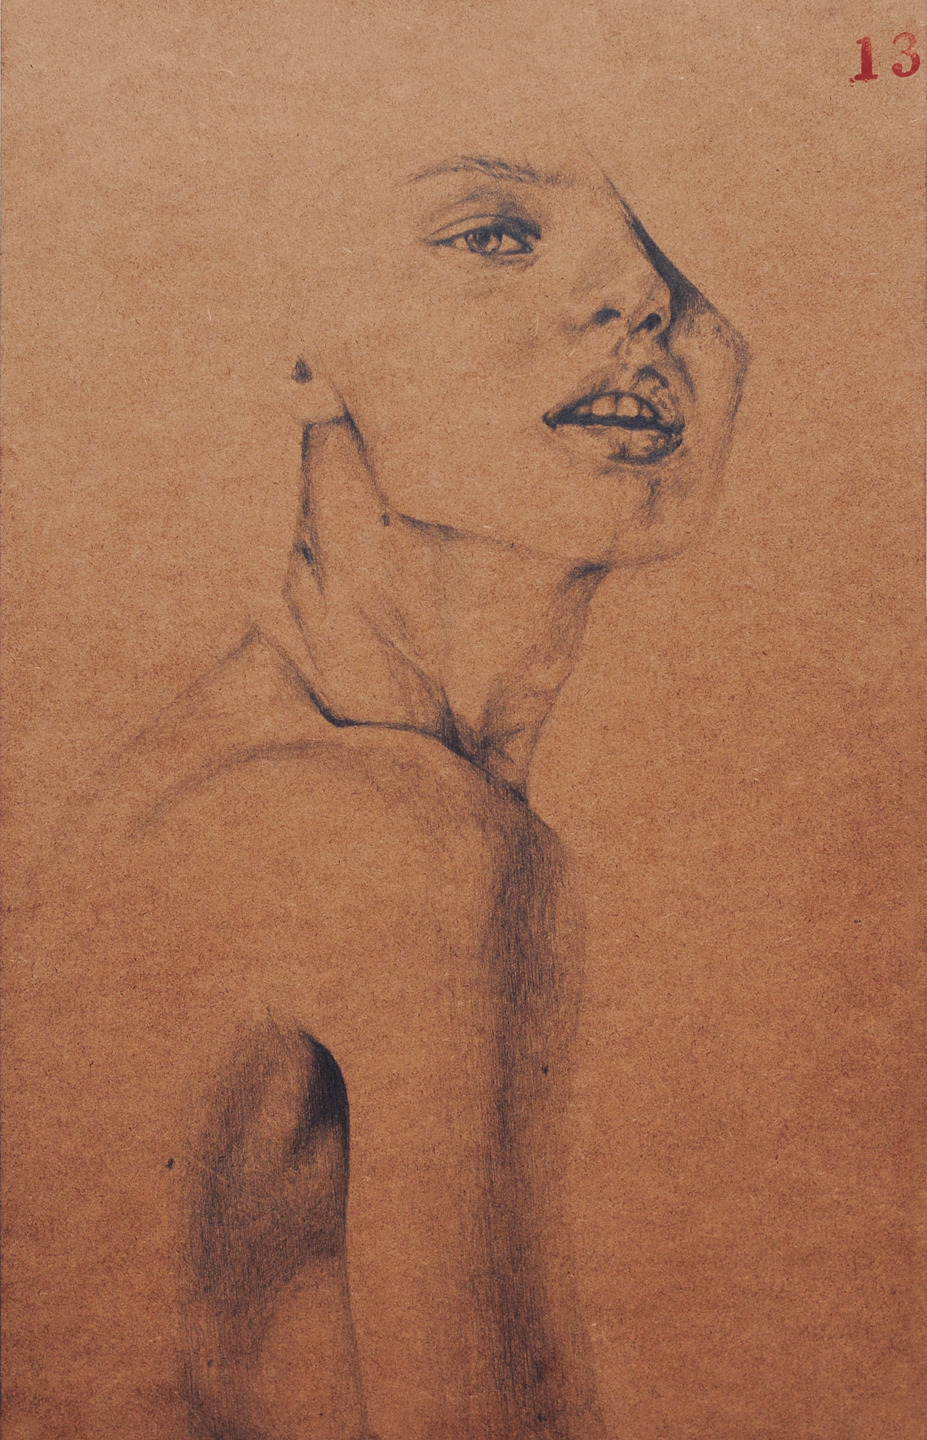 11x17 Pencil on wood I was originally supposed to paint this, but I started to sketch, and then came the shading, and then I basically lost control. Haha! I might paint over it with acrylic, so we'll see!And I don't know what to name this piece yet.